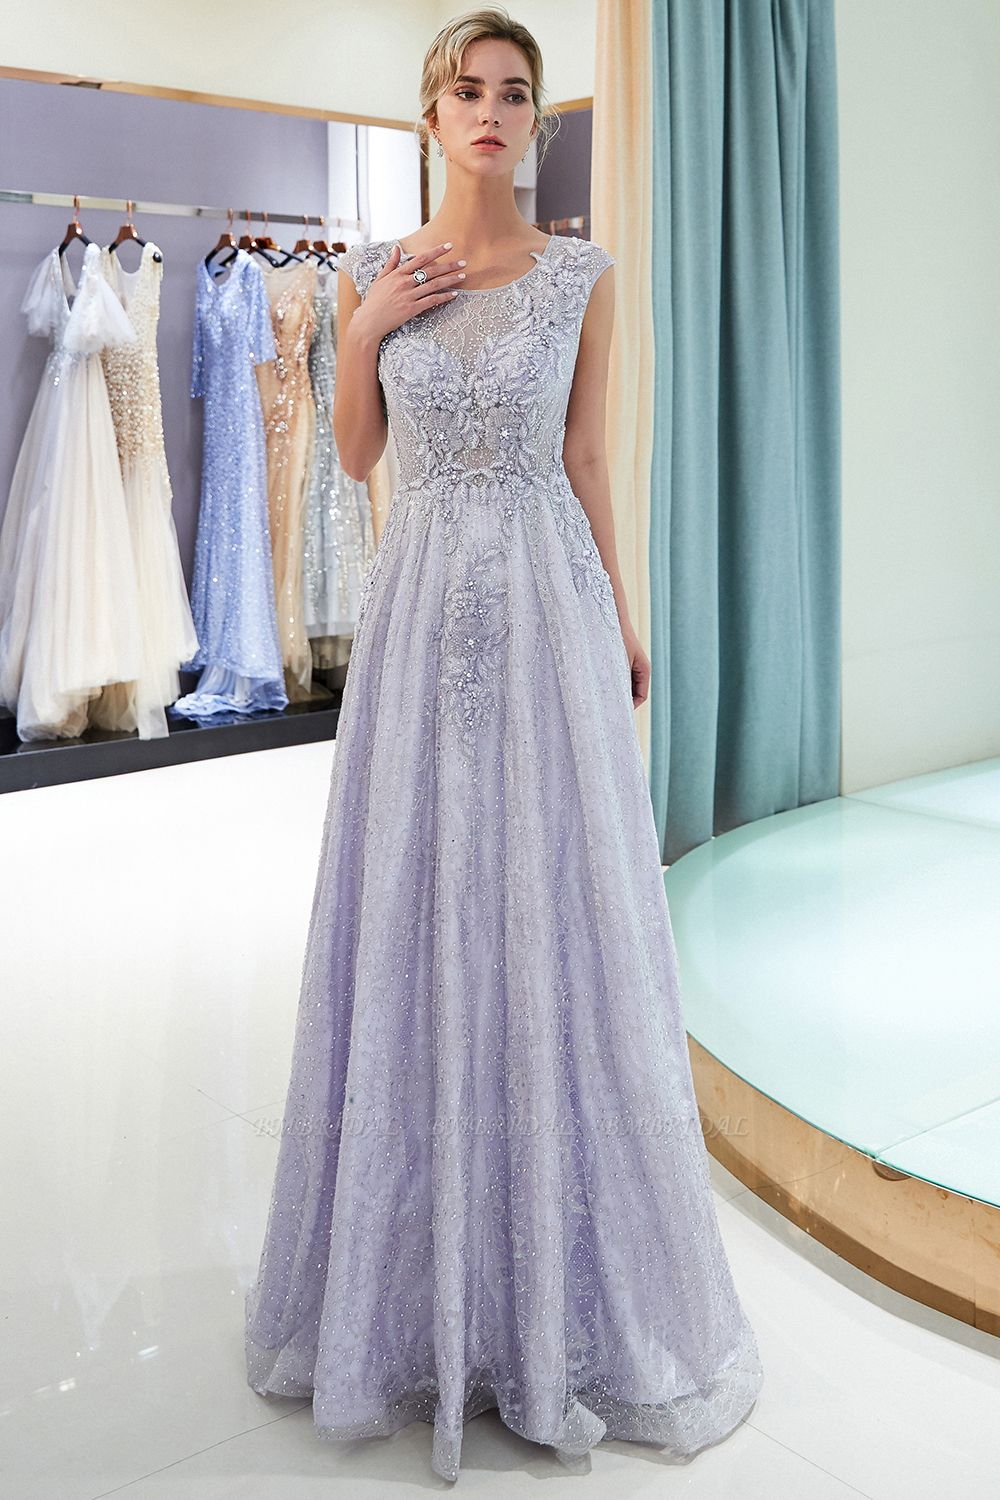 BMbridal Glamorous A-line Jewel Sleeveless Prom Dresses Lace Appliques Formal Dresses with Pearls